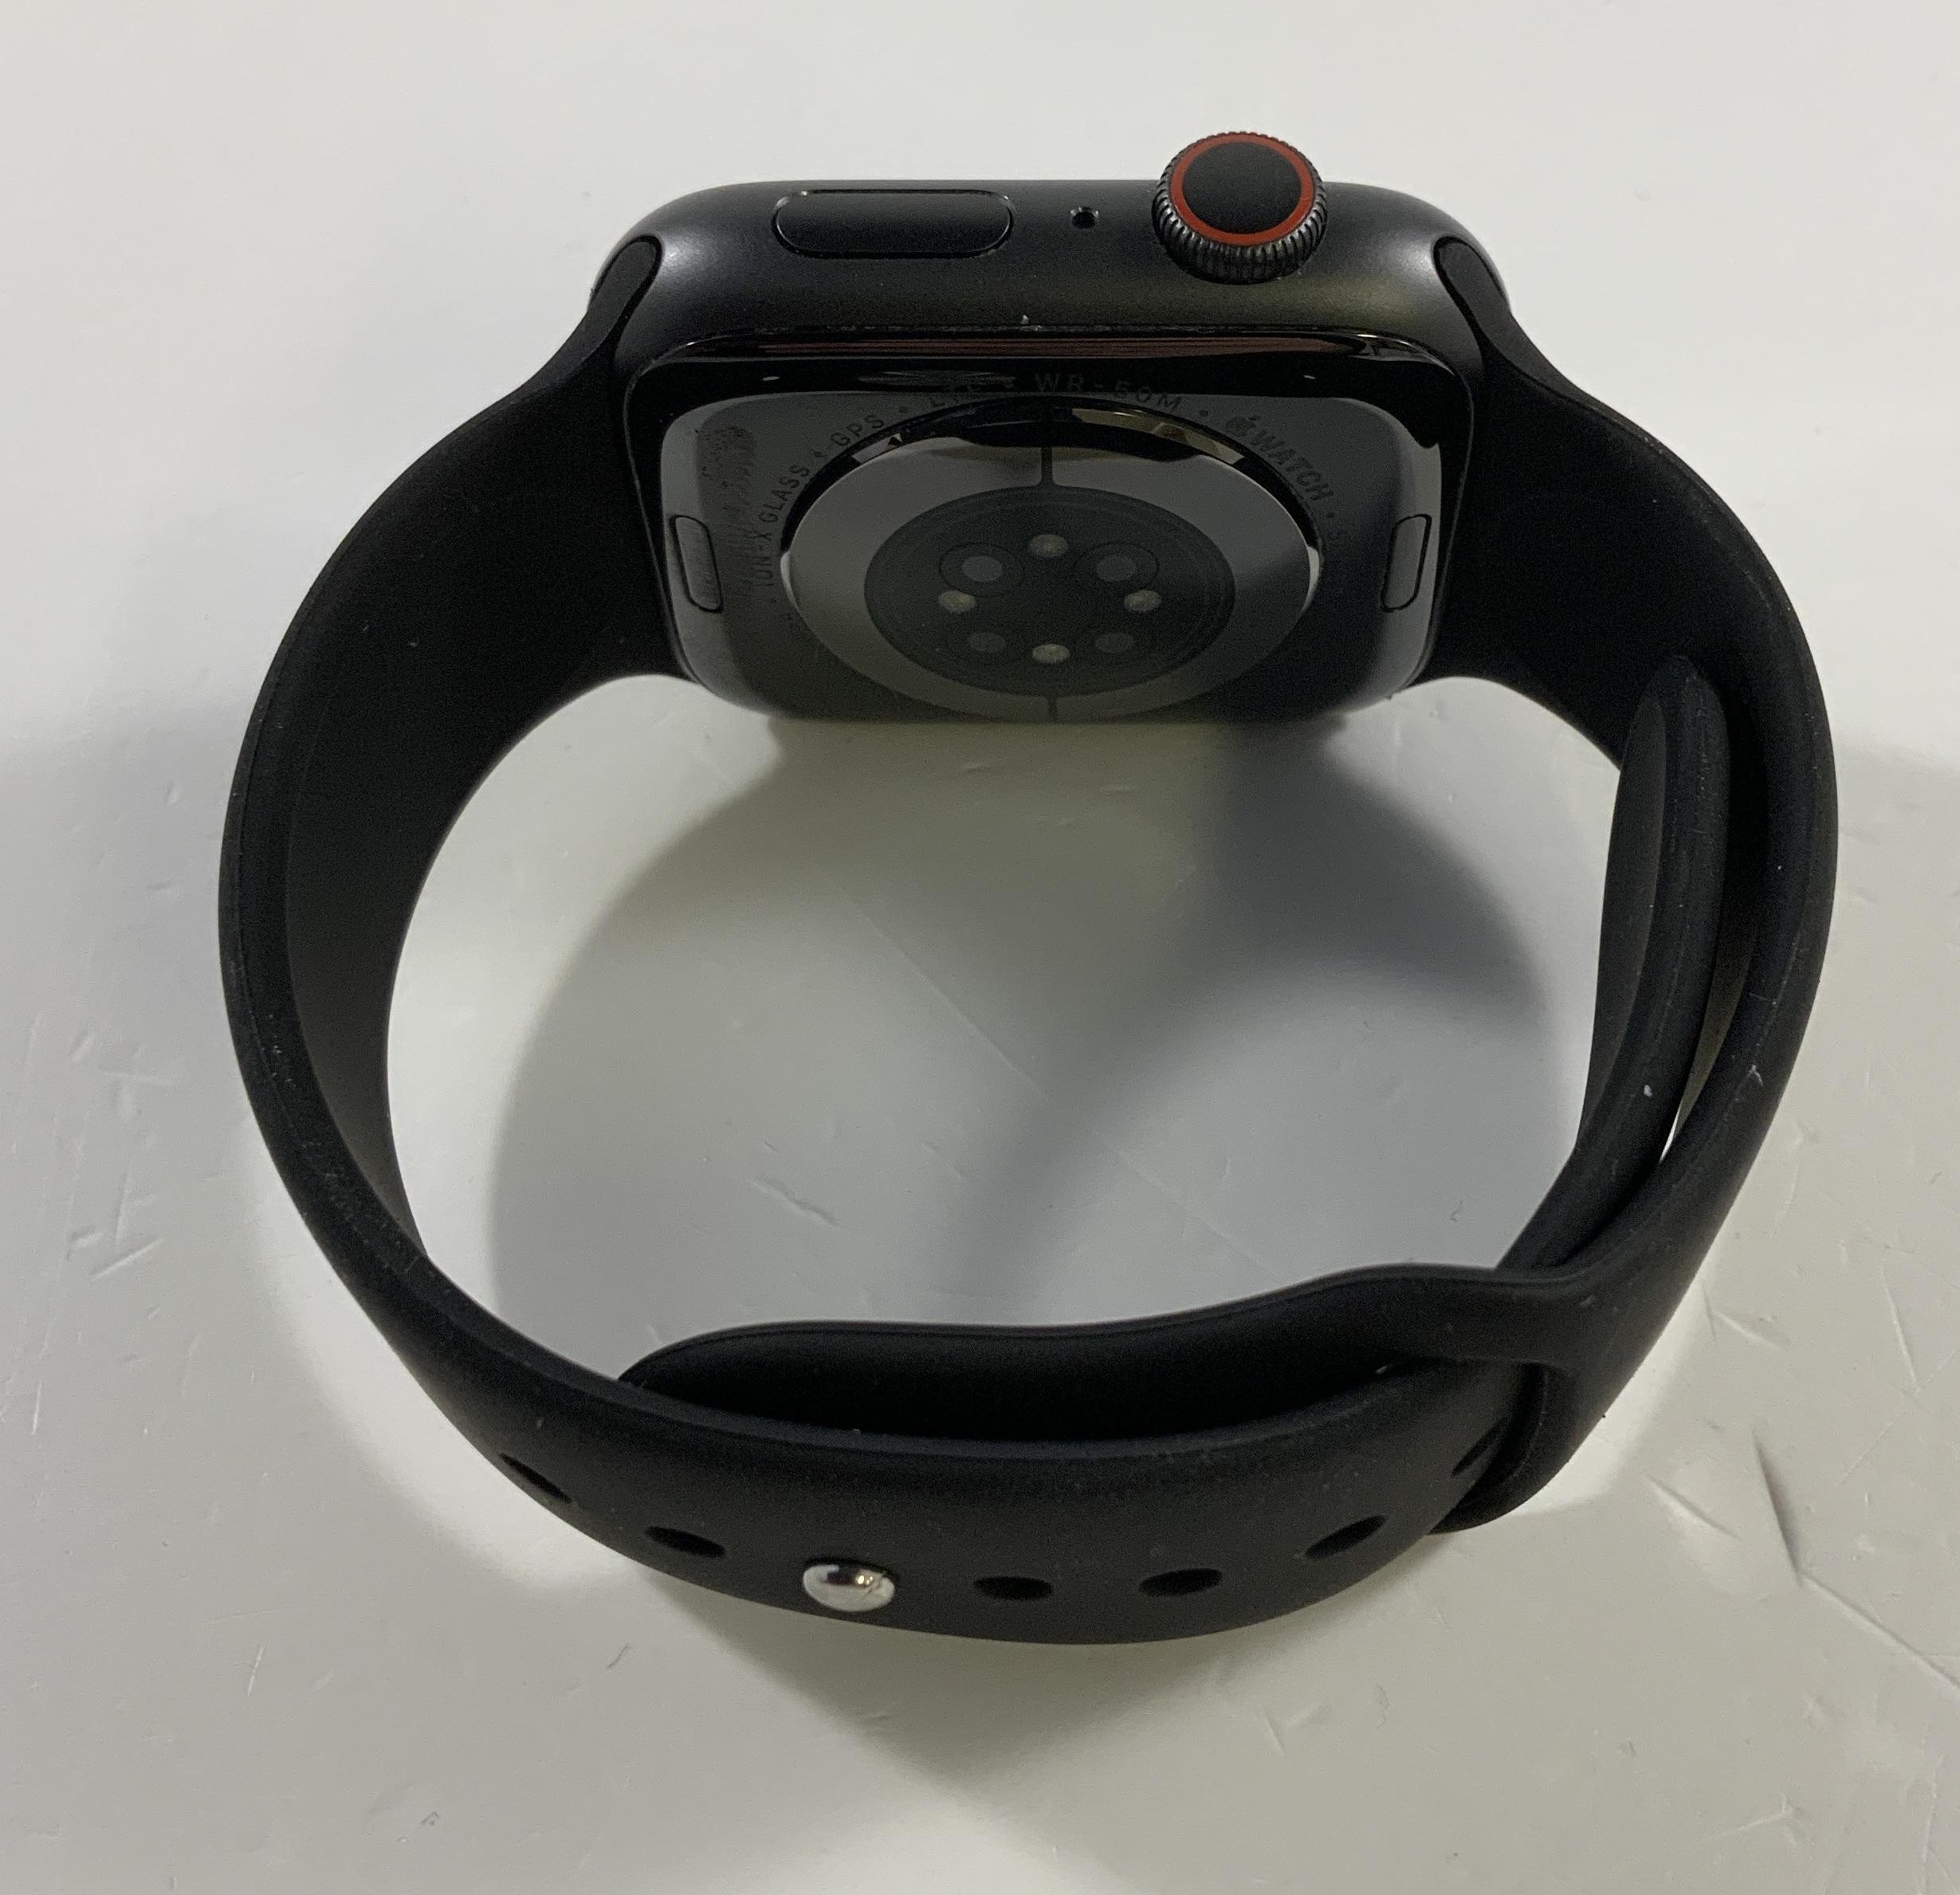 Watch Series 6 Aluminum Cellular (44mm), Space Gray, Afbeelding 4